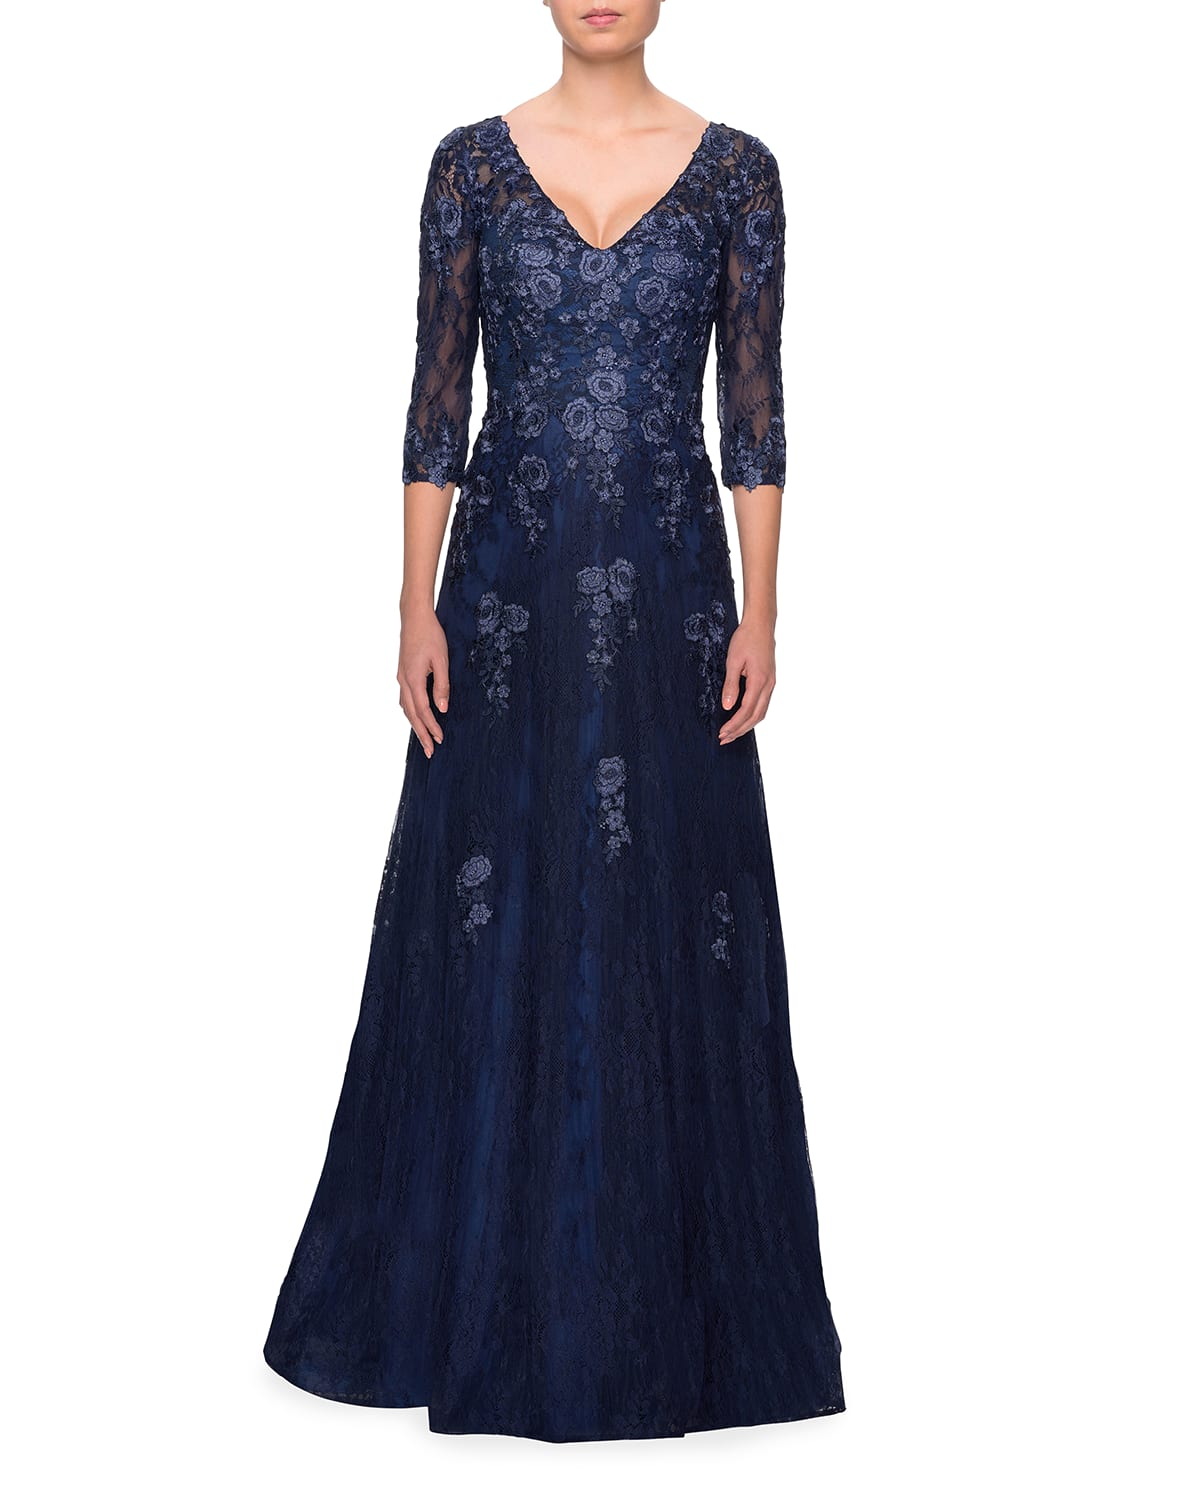 V-Neck 3/4-Sleeve Tulle Gown with Floral Lace Applique